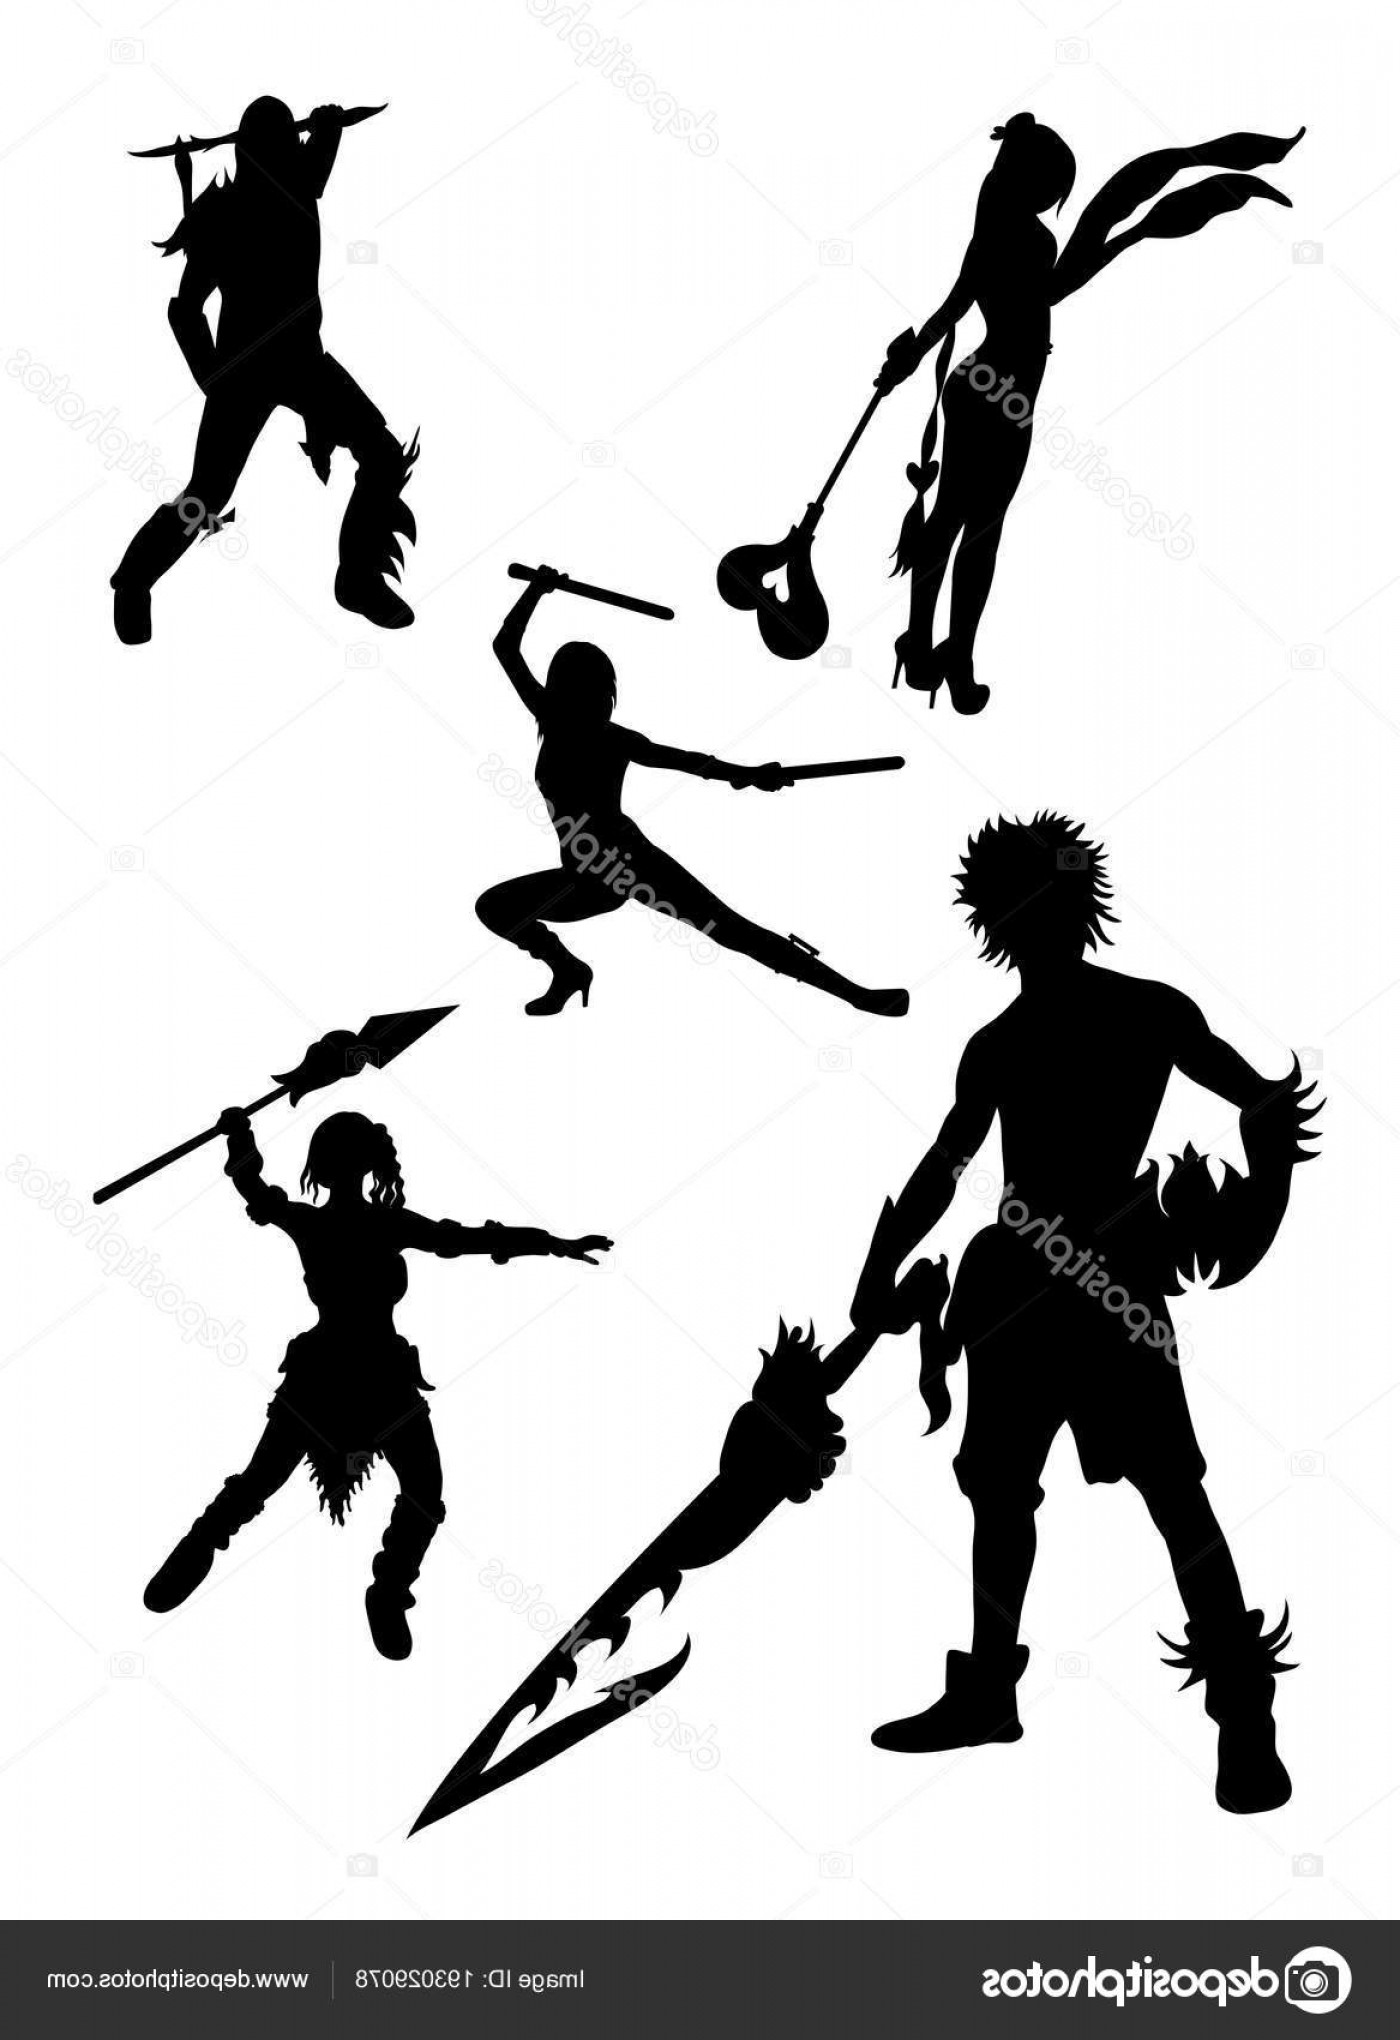 Vector Cosplay: Stock Illustration Cosplay Detail Silhouette Good Use